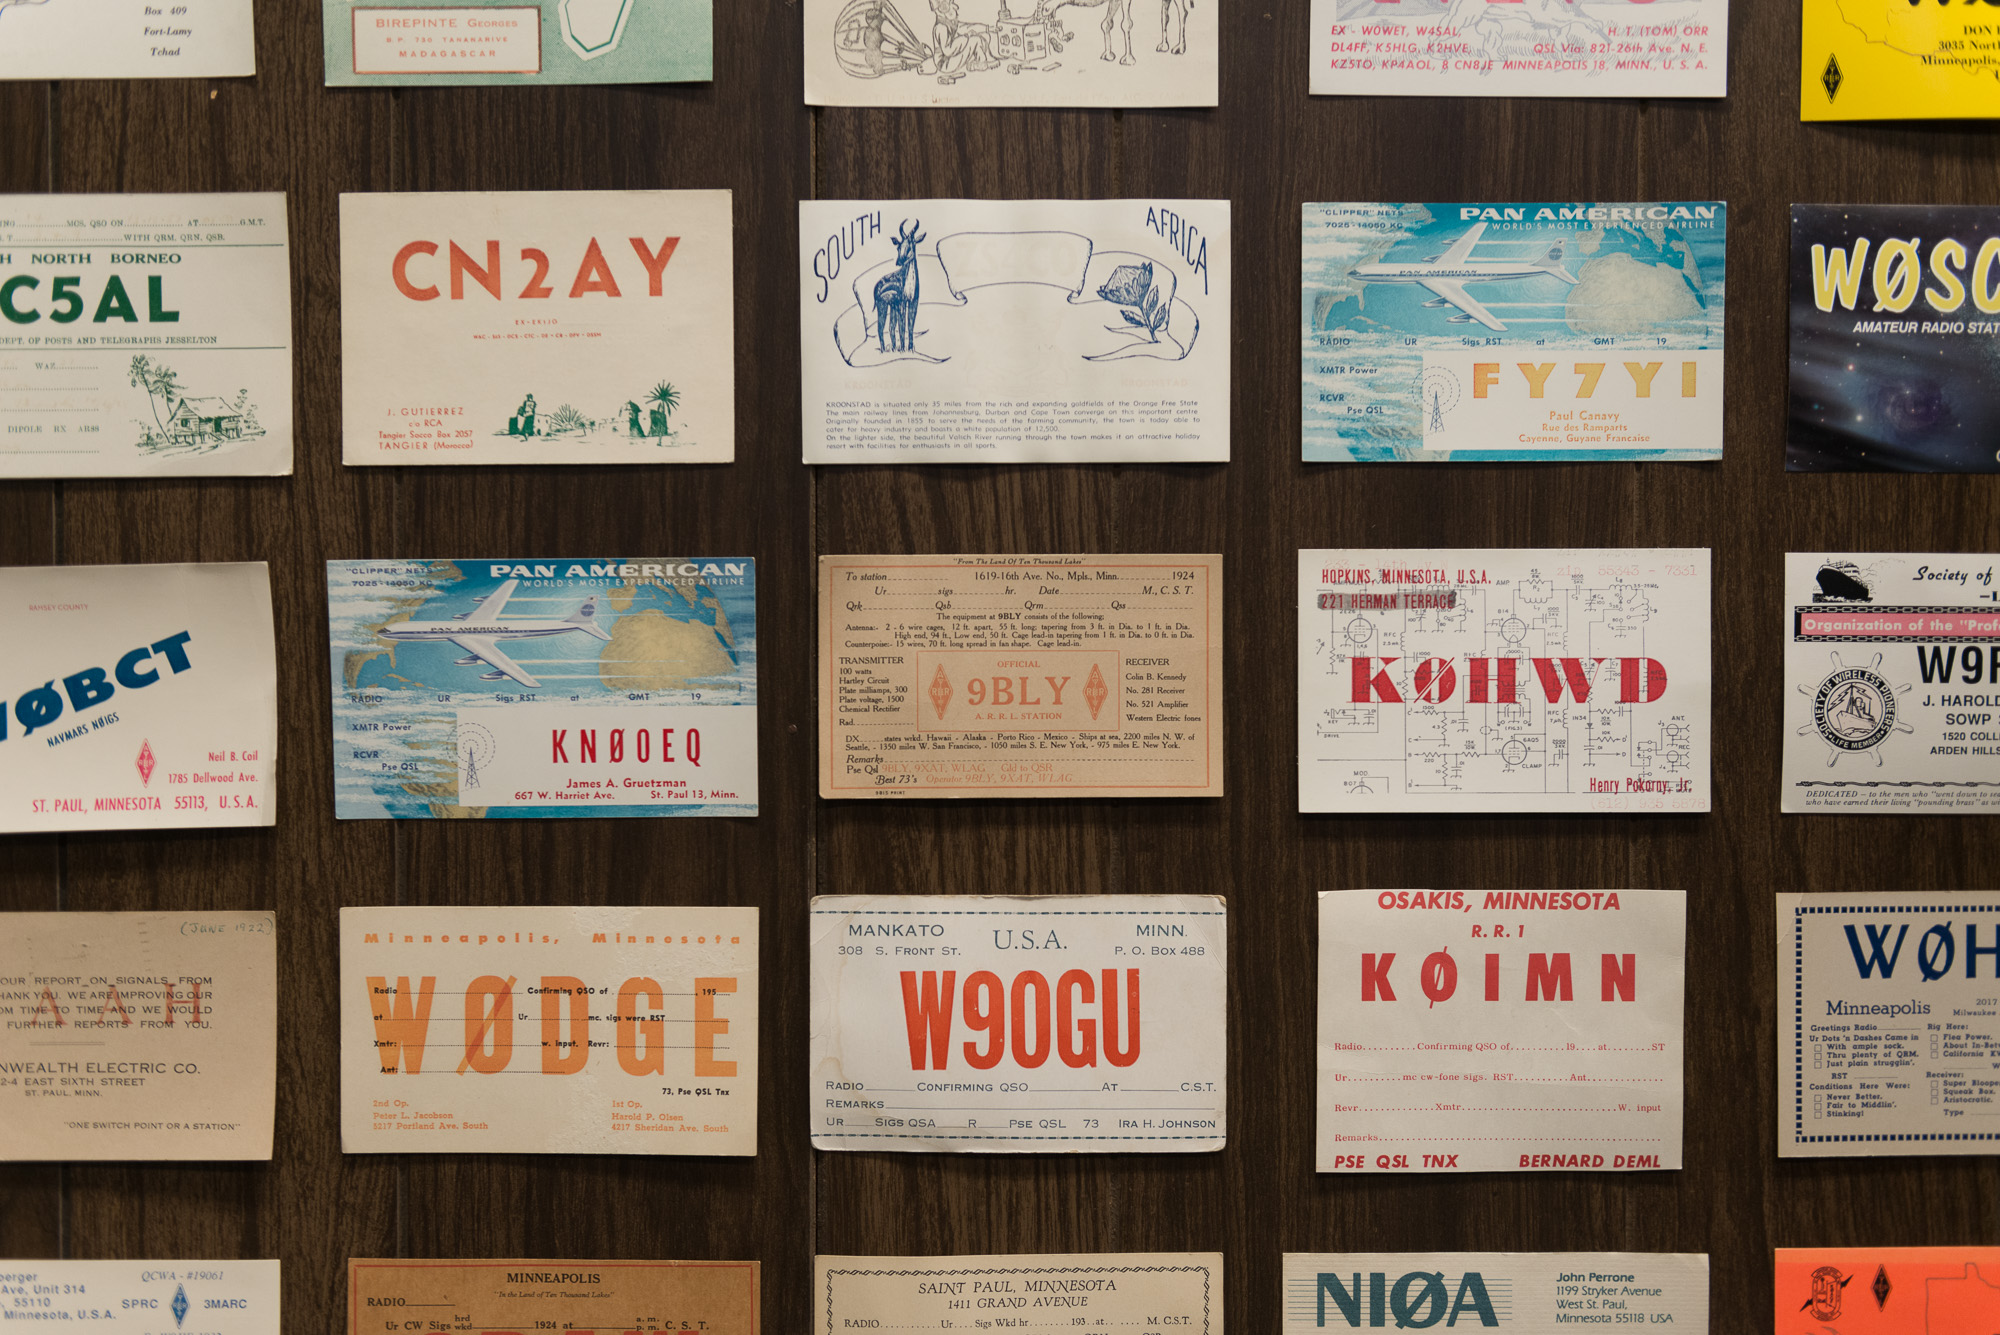 A grid of radio postcards on a wall. The cards are evenly spaced, but each very differently designed. Some have bold typography featuring 5 letter codes. Others depict animals / planes / local scenes.